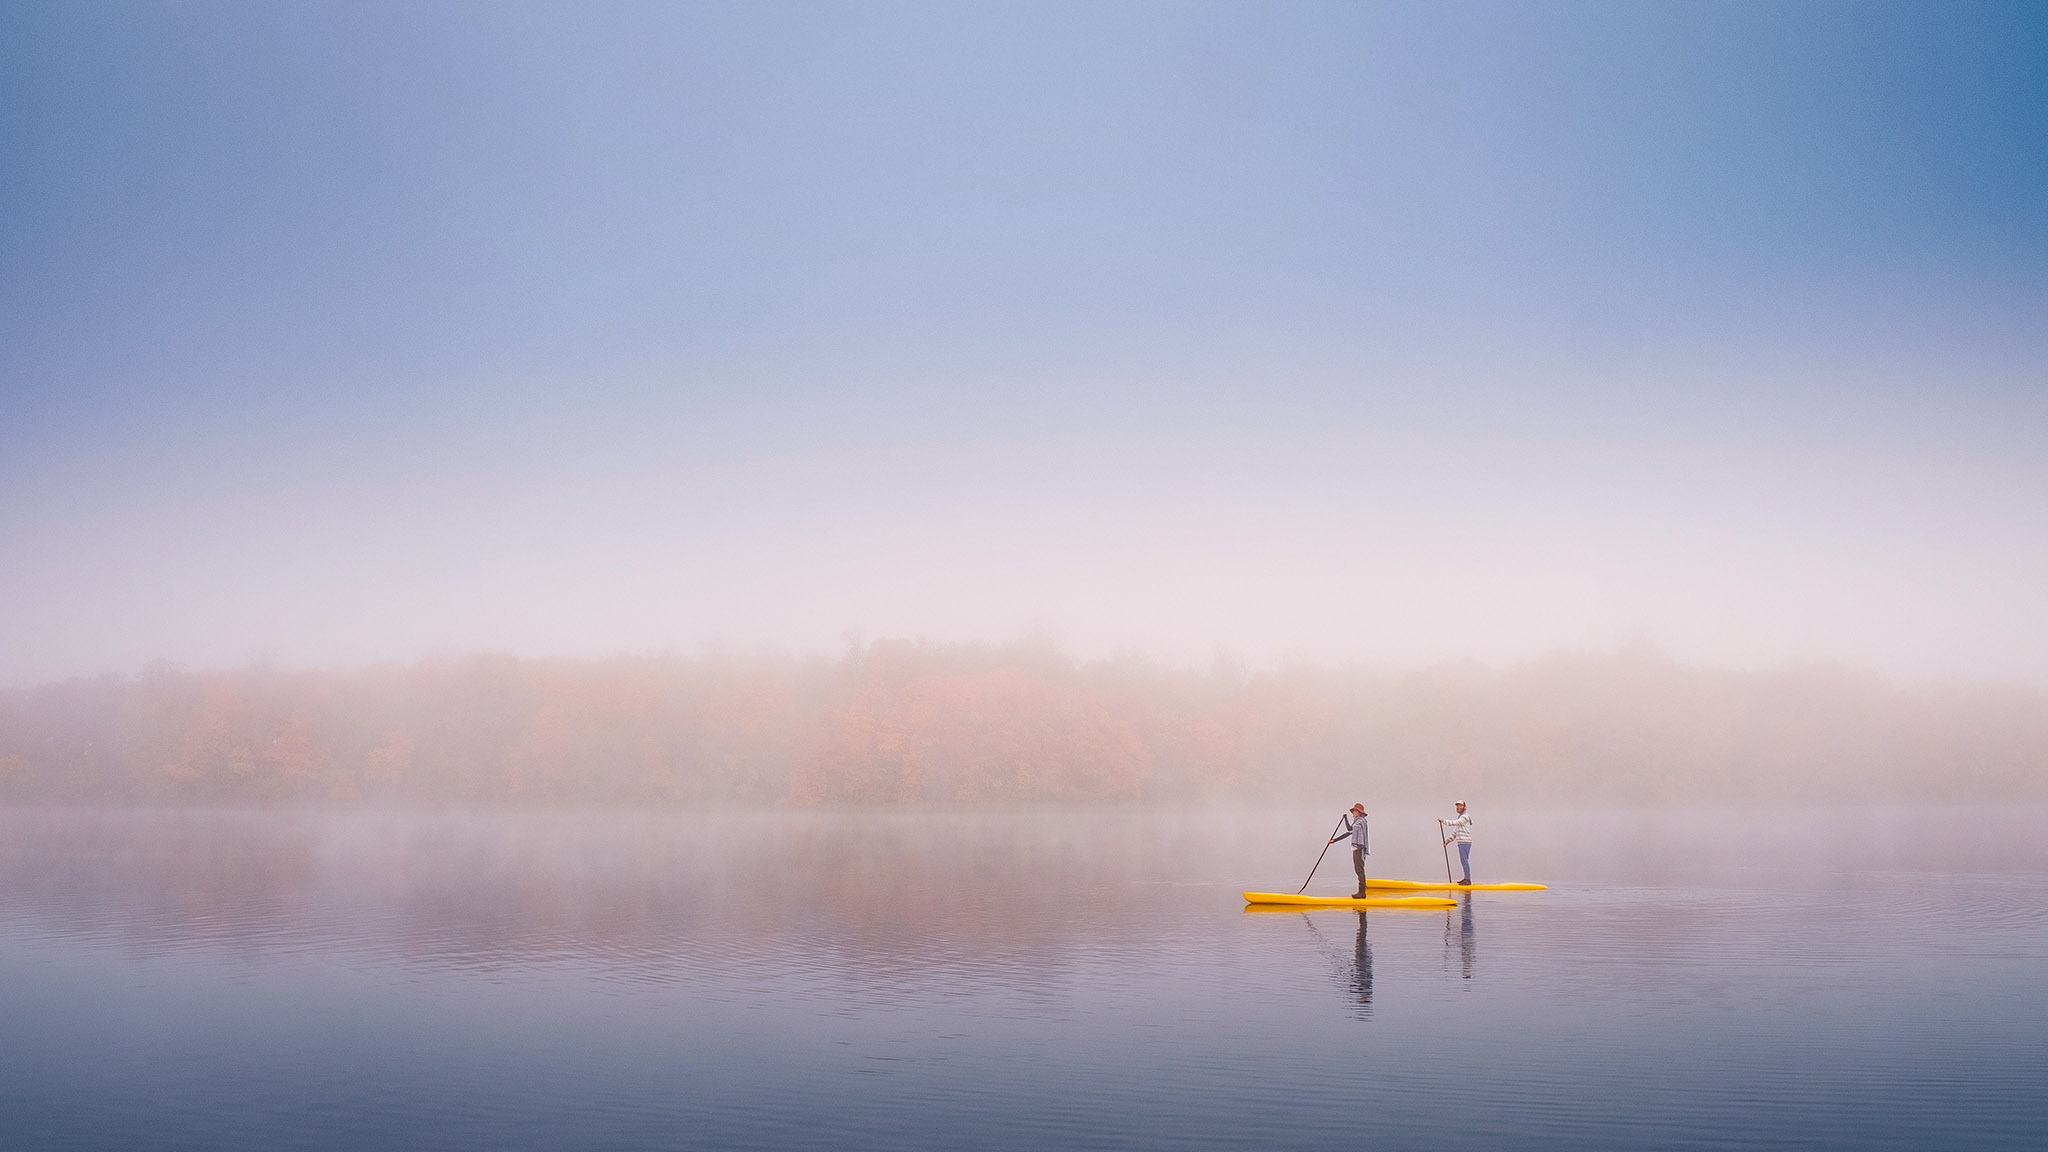 Standup Paddleboarding on Lake Carlos • photographed for Explore Alexandria Tourism